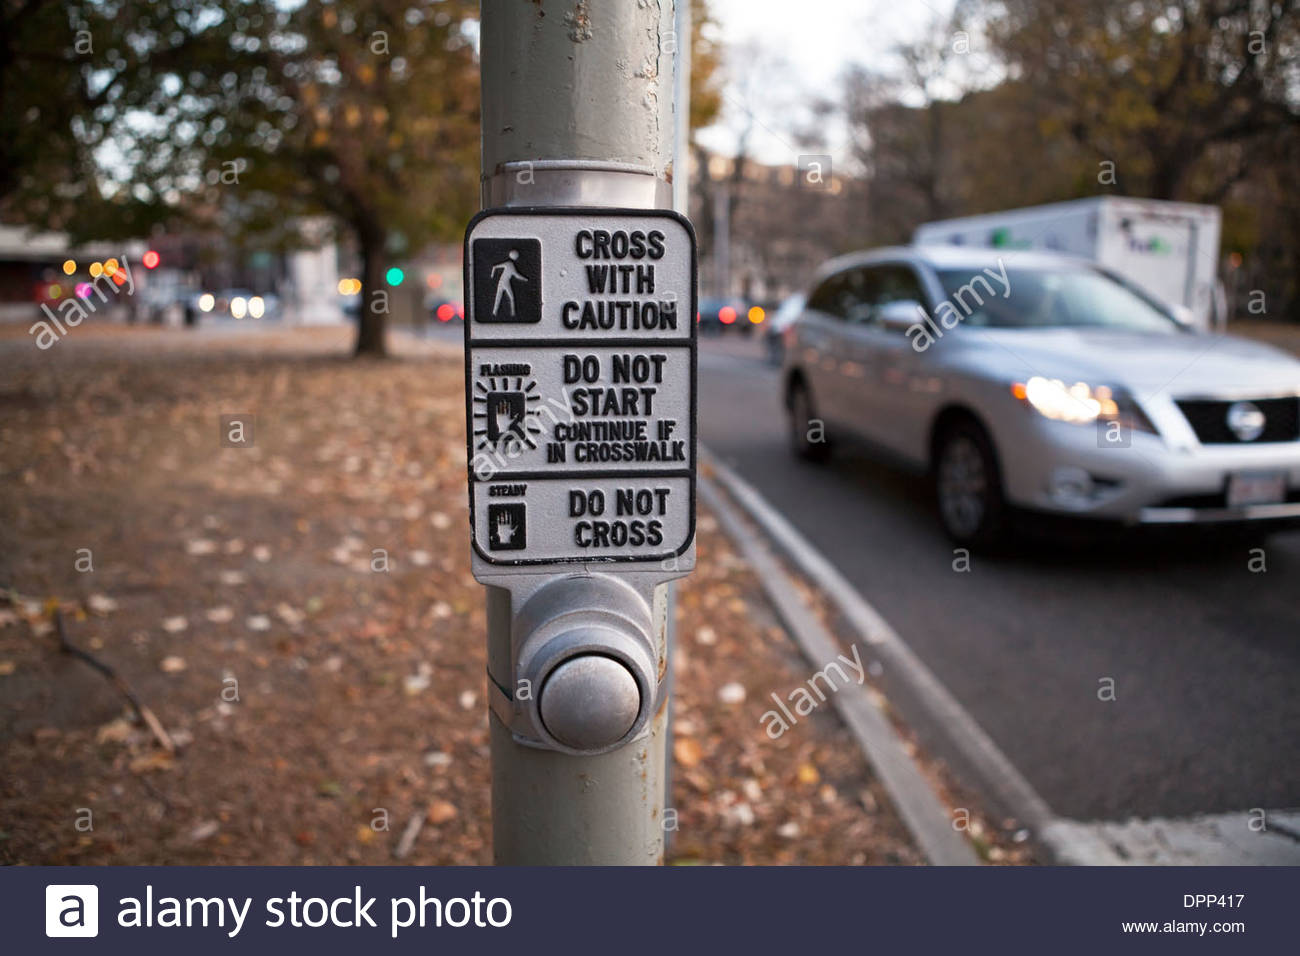 A pushbutton and sign help pedestrians to cross the street safely in Boston. - Stock Image